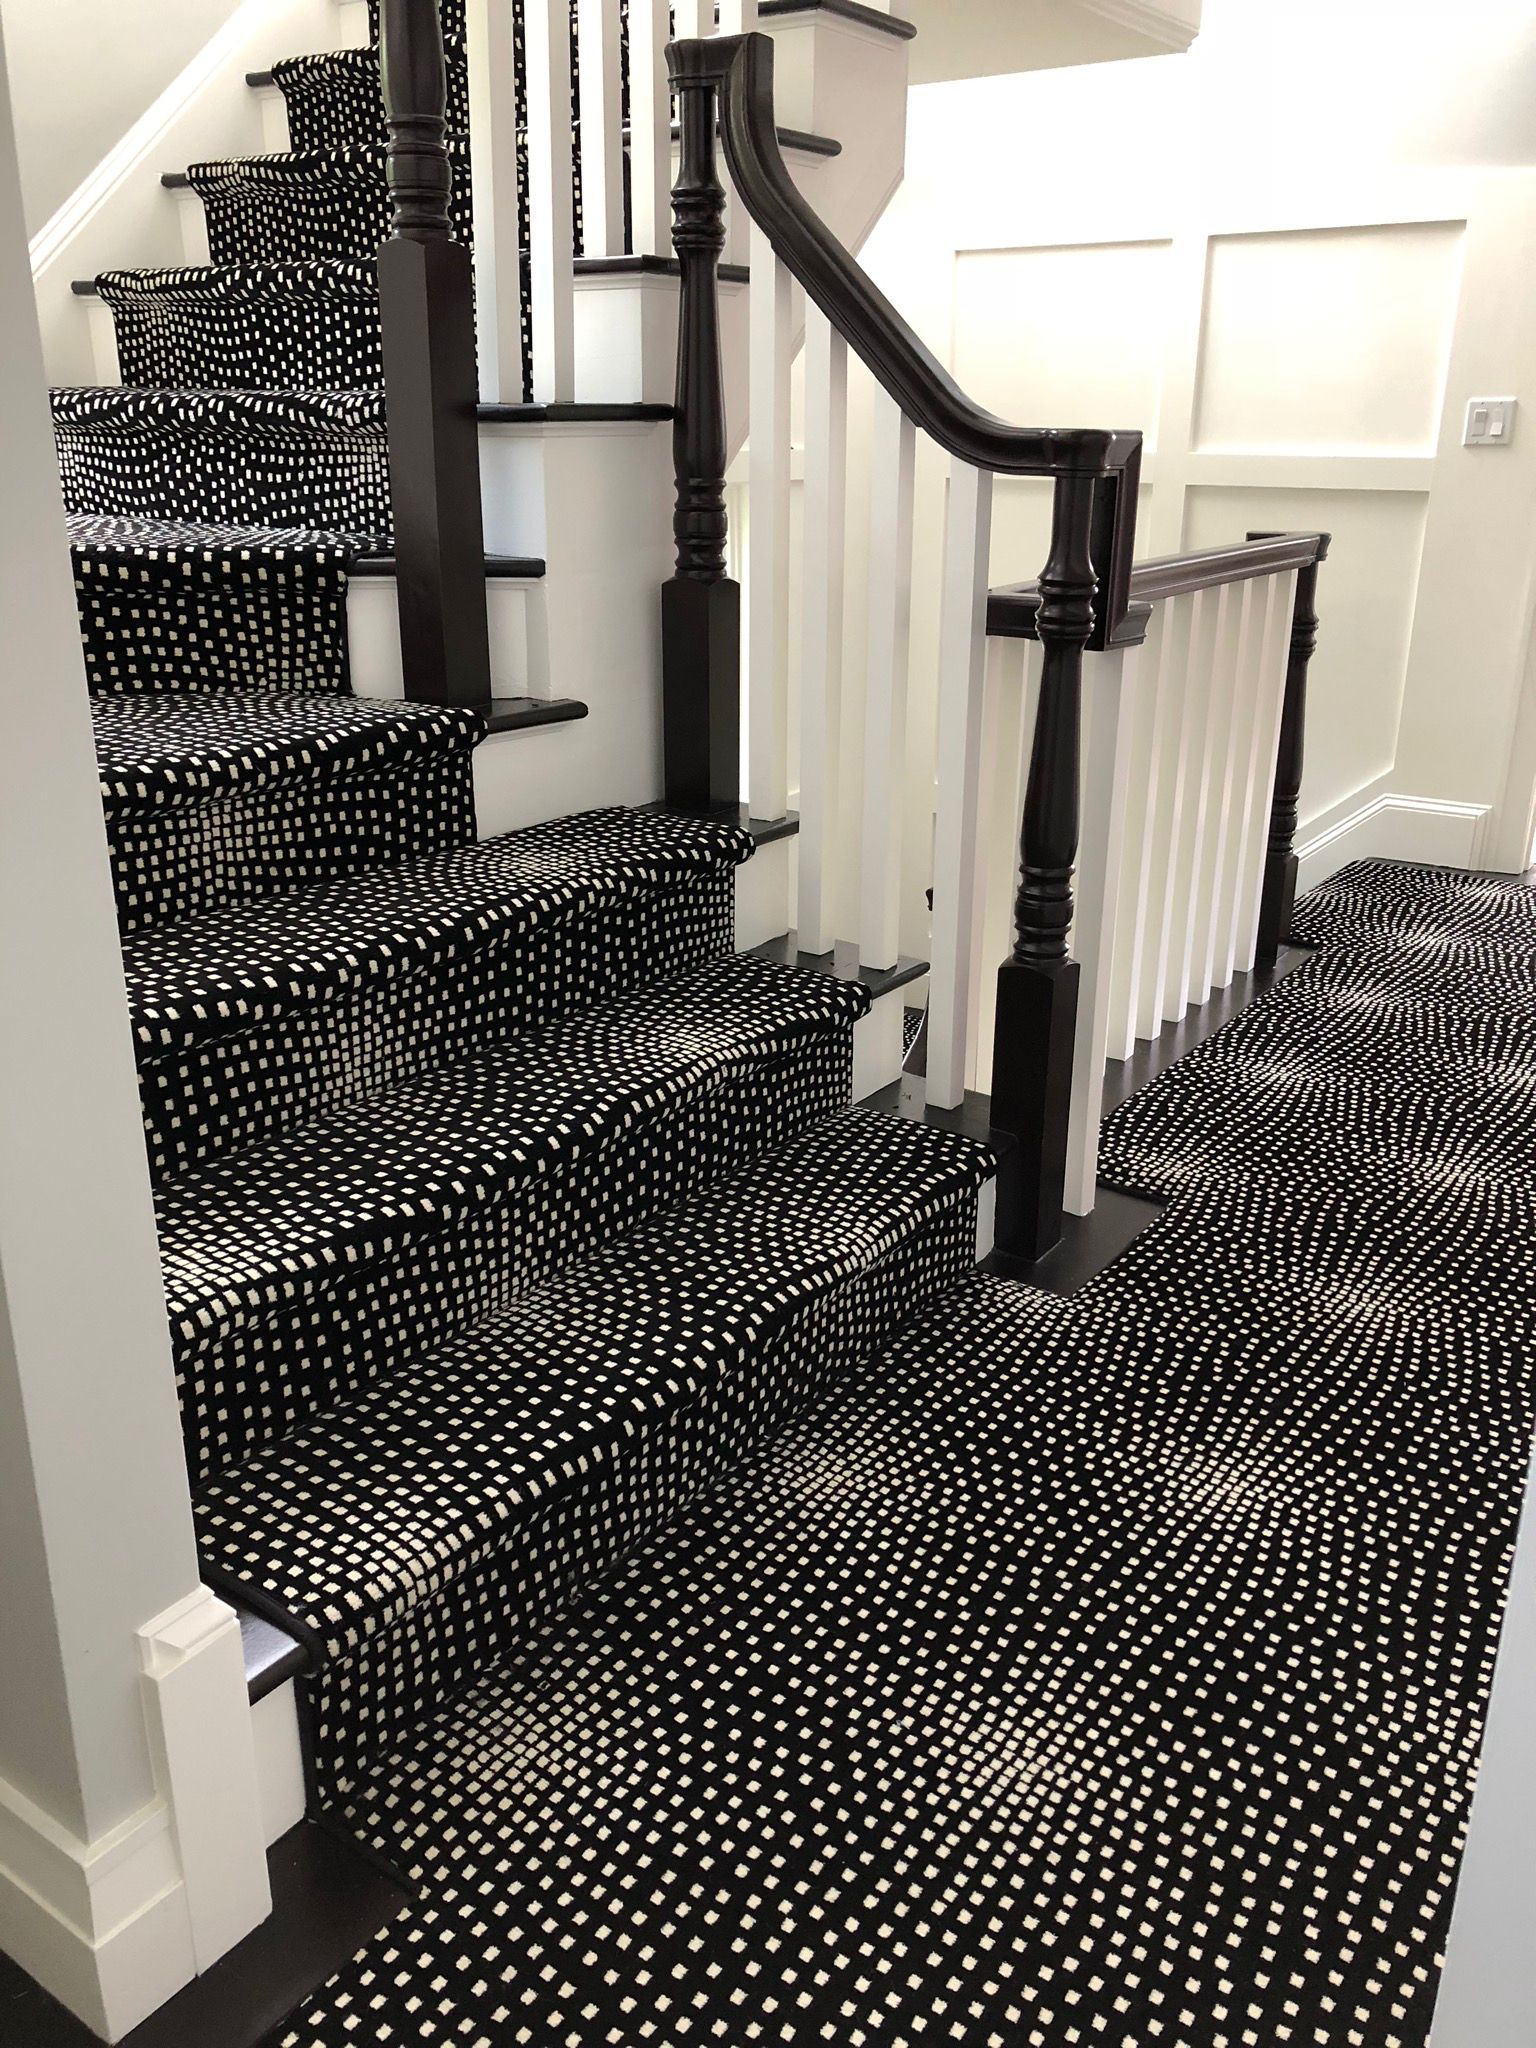 Boston Interiordesigner Carpet Modern Modern Stairs Stairs   Black And White Carpet Stairs   Victorian   Striped   Geometric   Low Cost Simple   Unusual